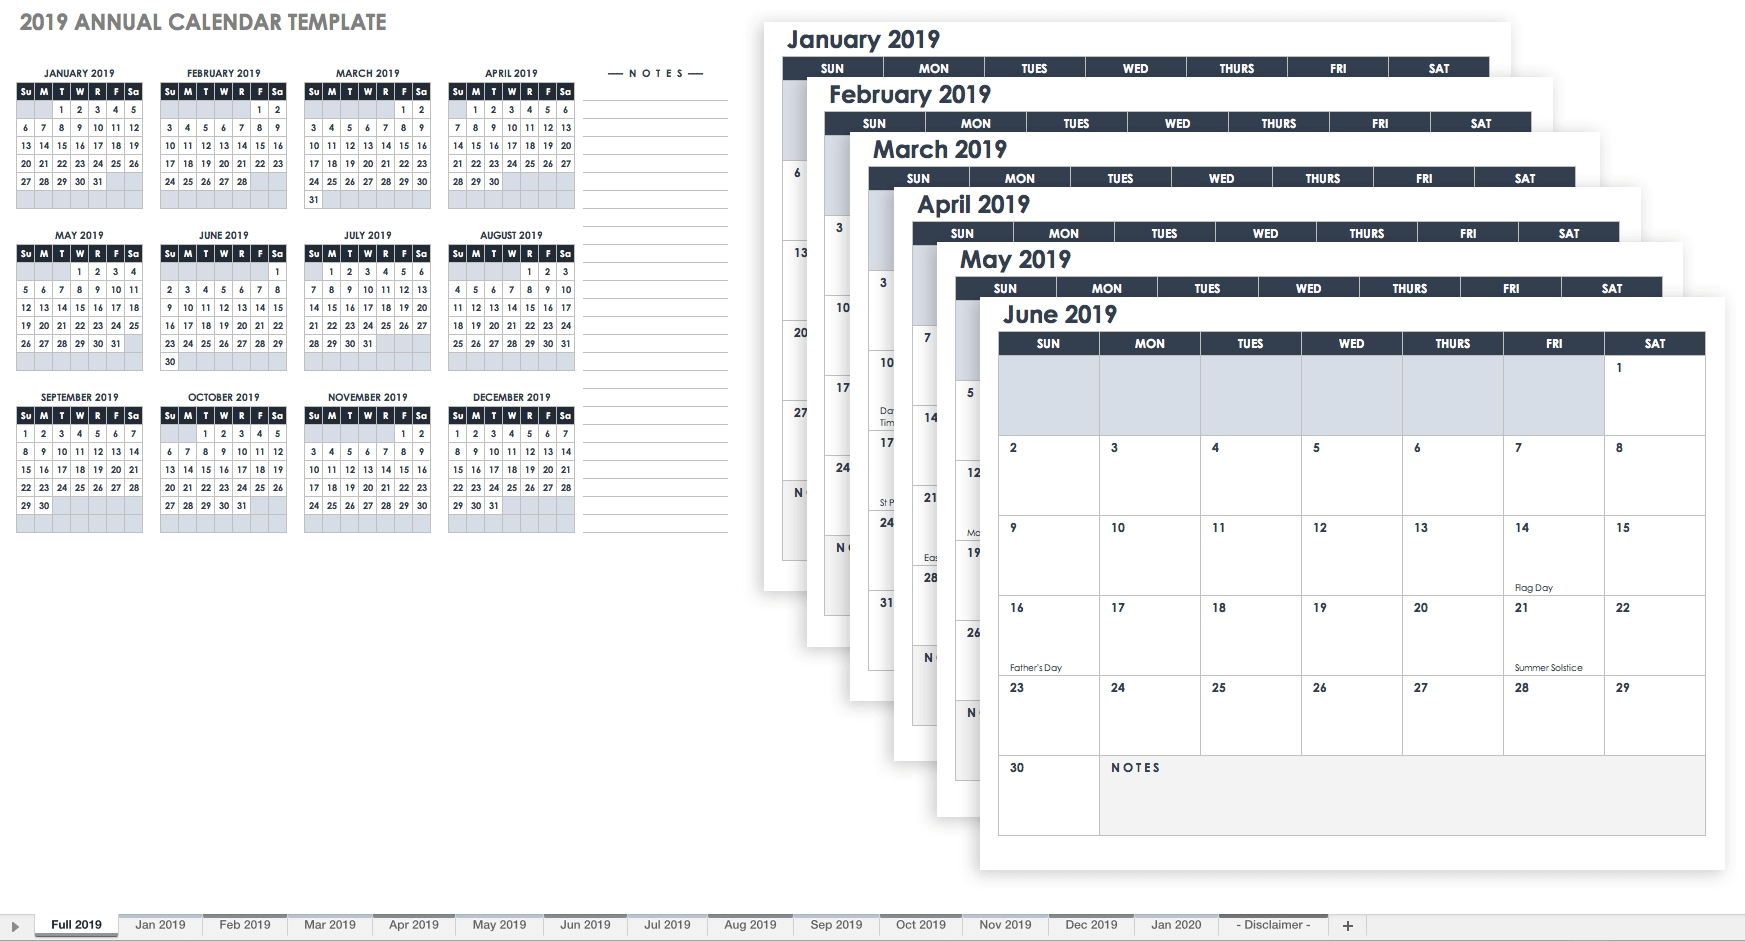 15 Free Monthly Calendar Templates | Smartsheet with regard to 12 Months Printable Calendar Whole